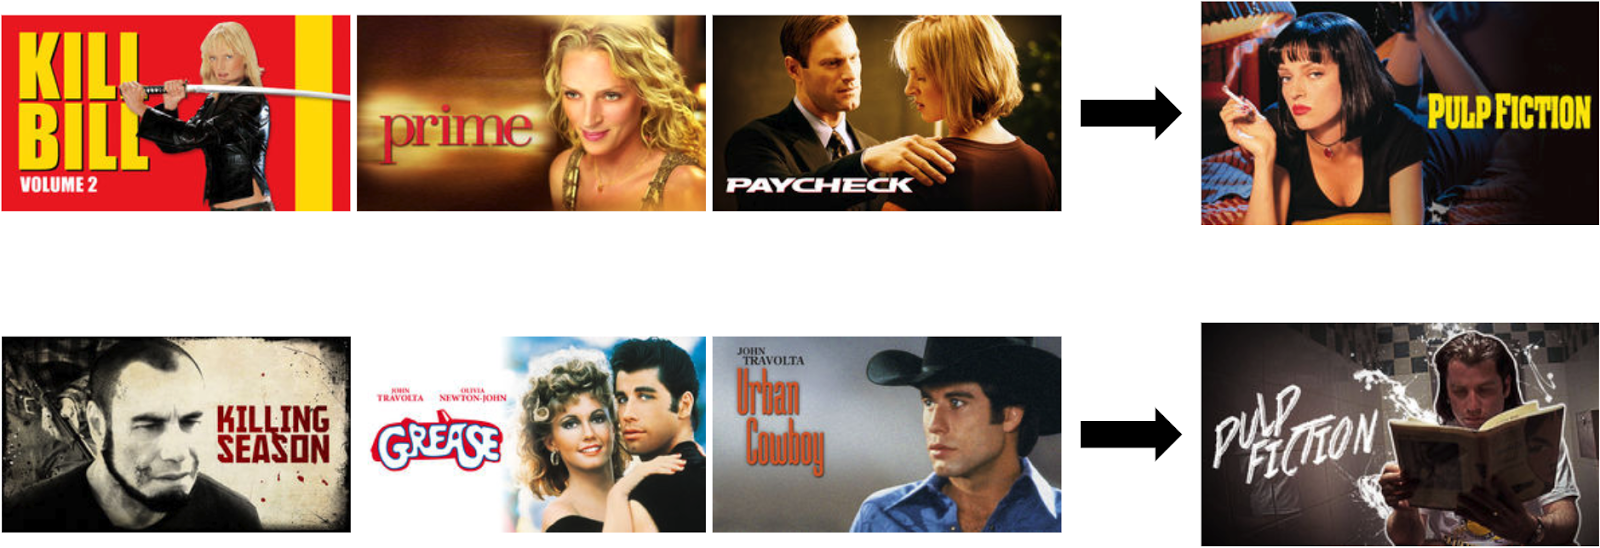 Based upon a user's historical actor preferences (Uma Thurman or John Travolta) the Netflix image algo will determine the best way to display movie/show titles to a user.